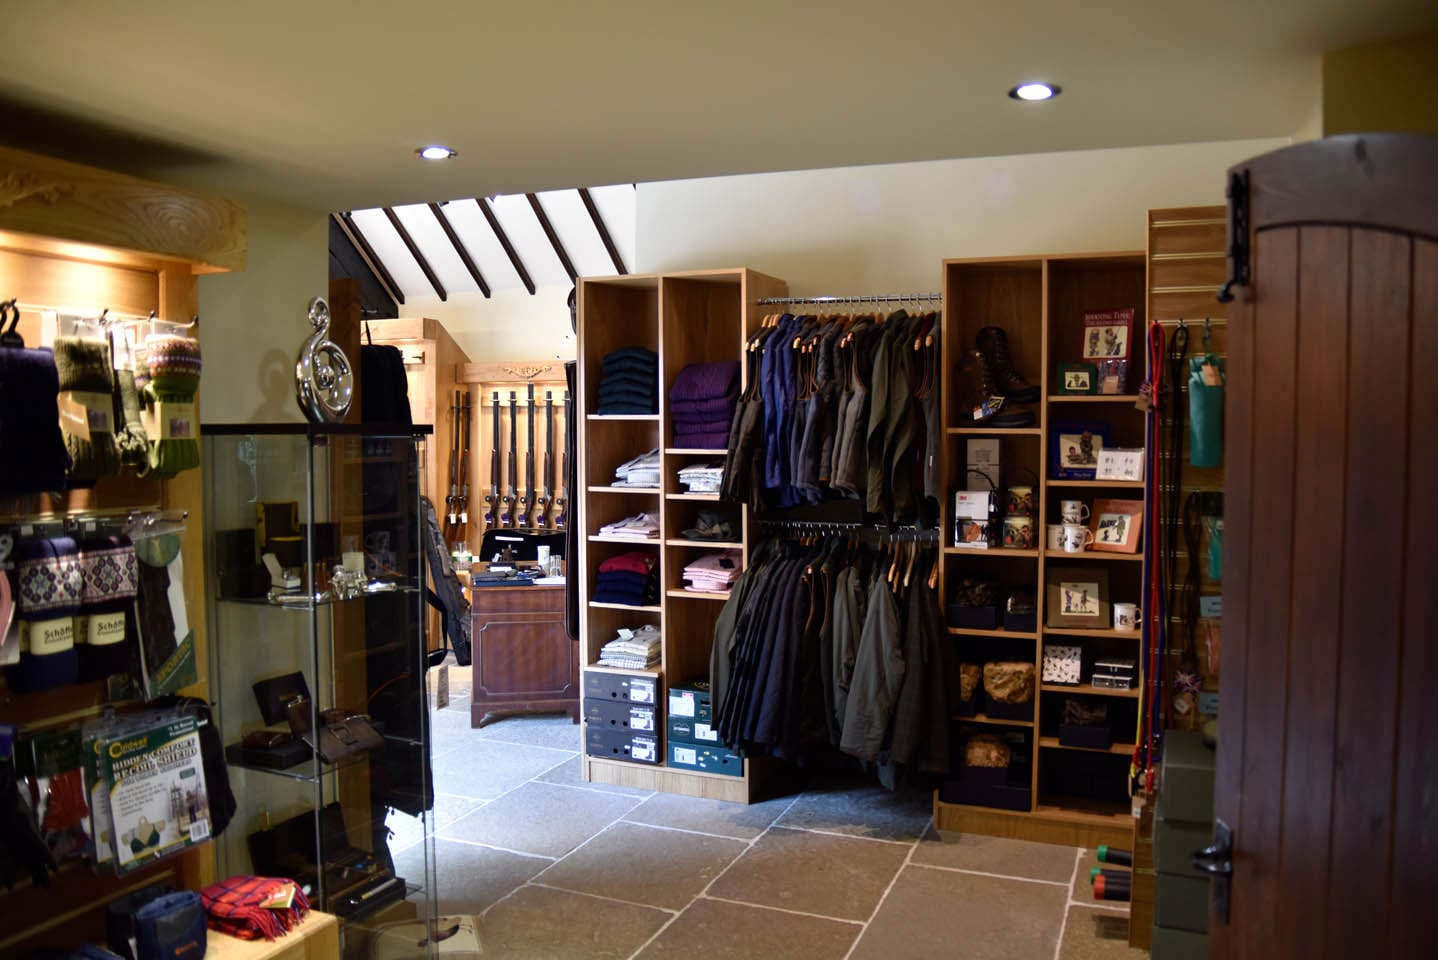 Shooting accessories sold at the Sportarm at Lady's Wood Gun Room